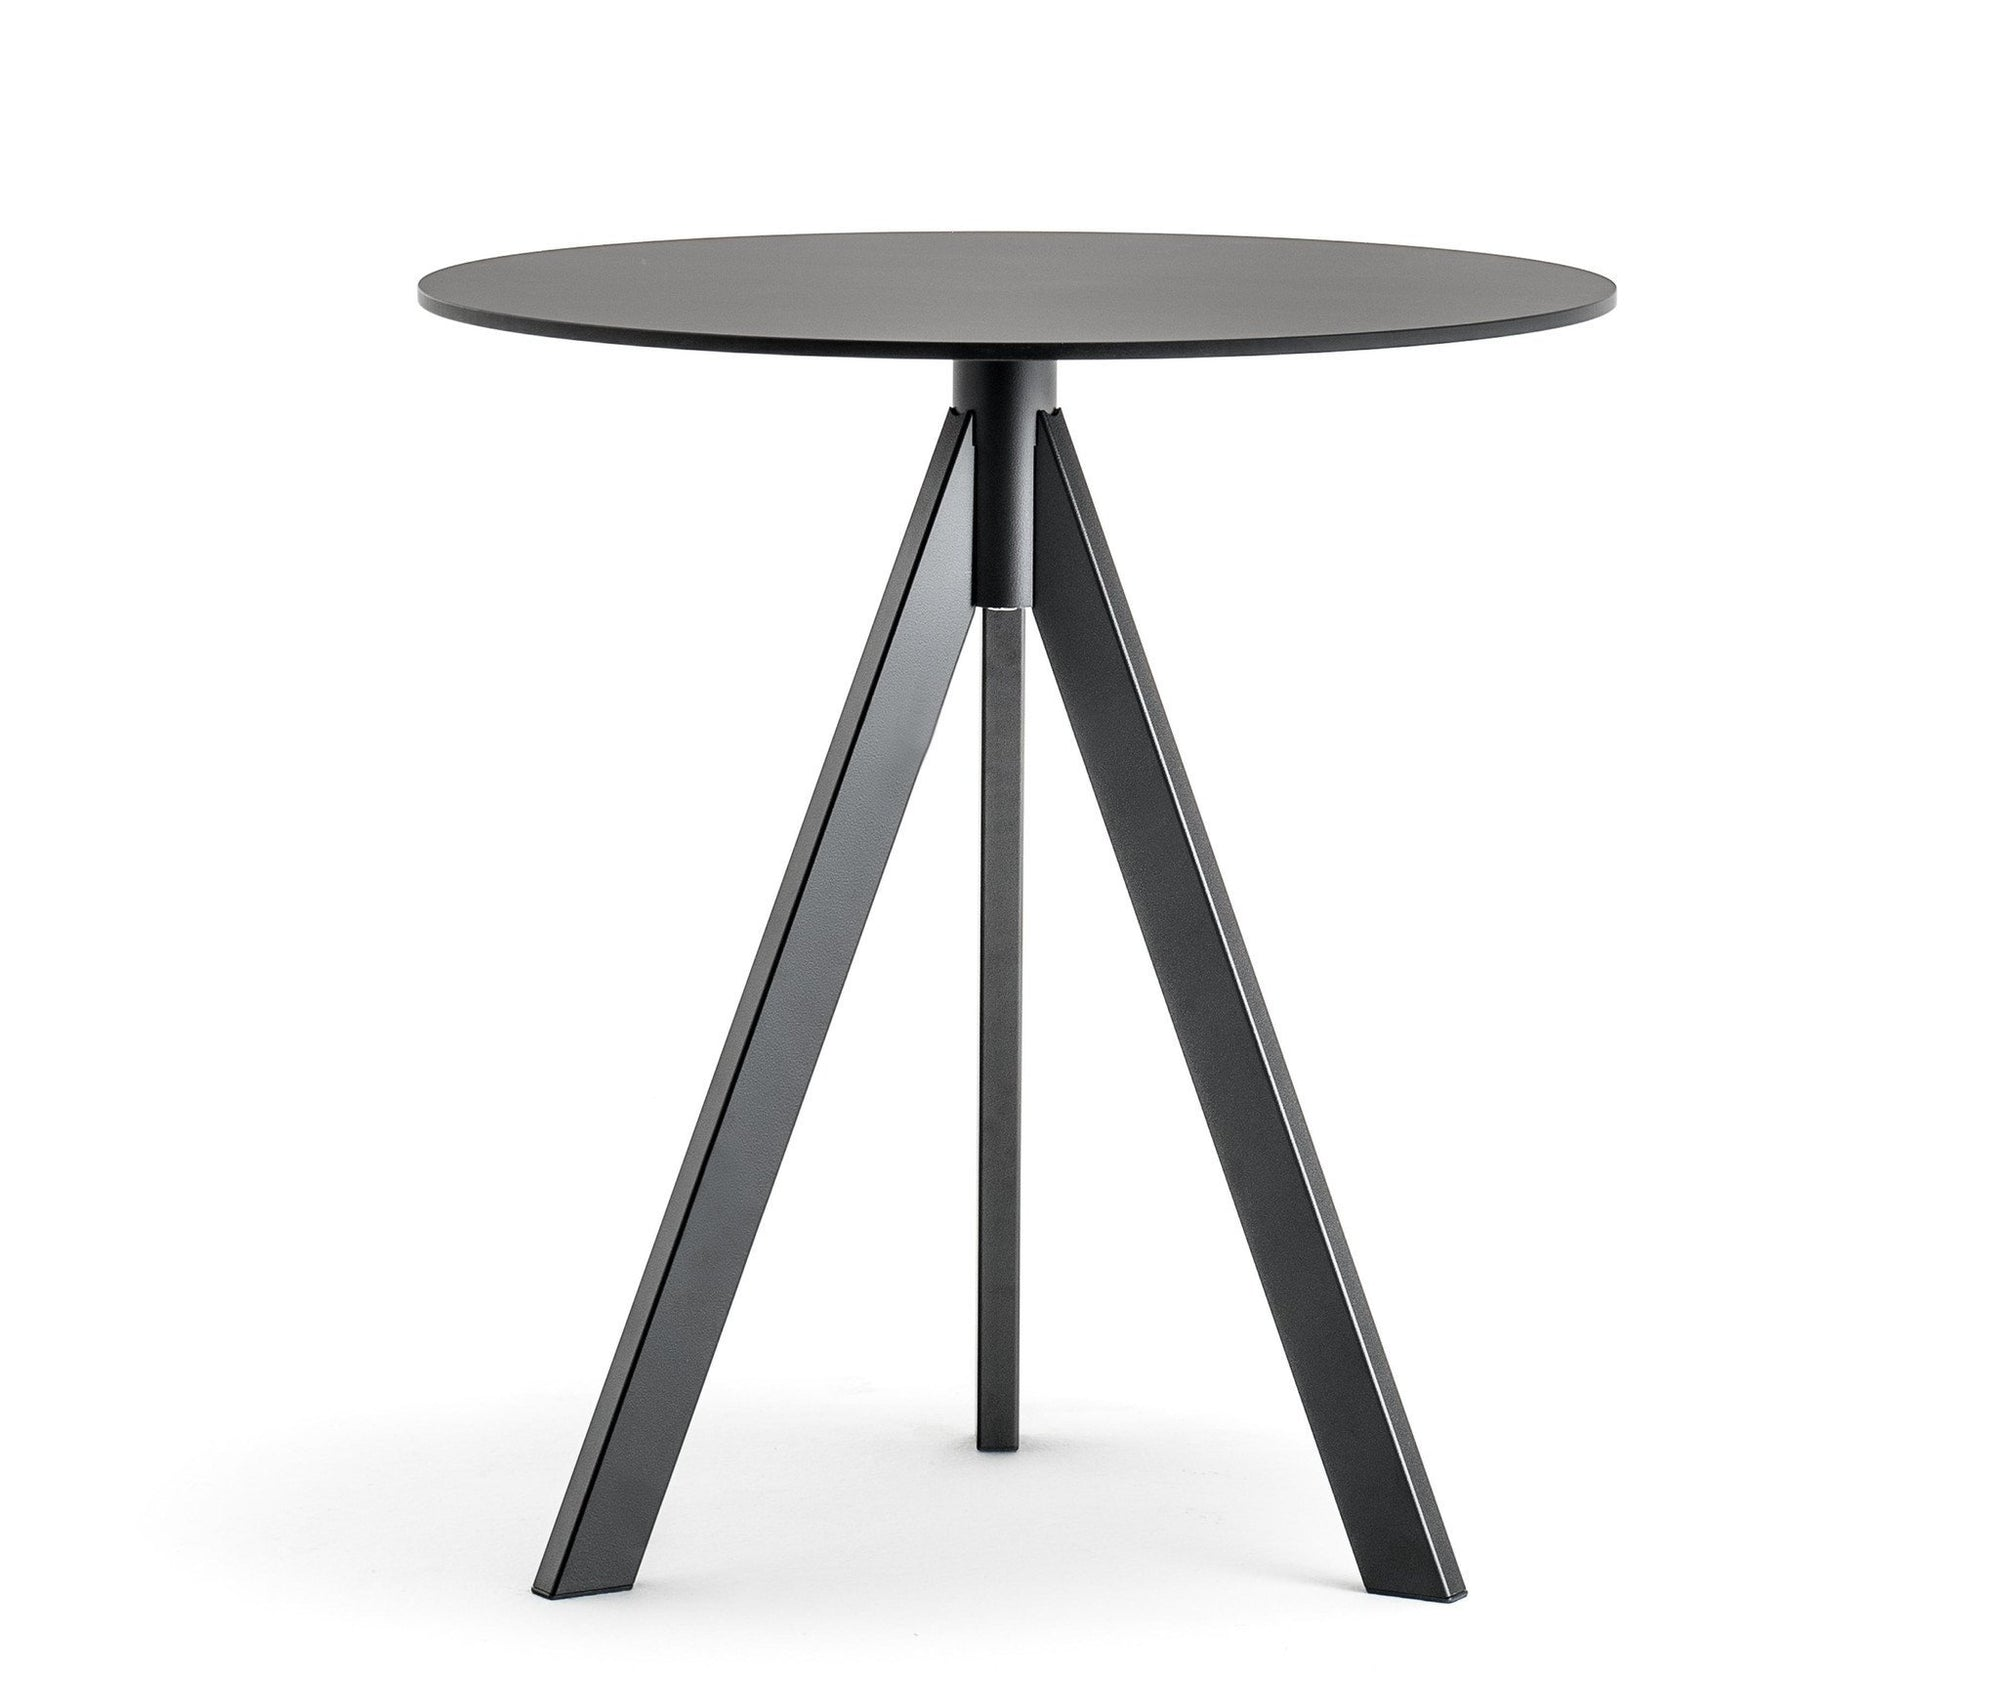 Arki Ark3 Dining Table-Pedrali-Contract Furniture Store